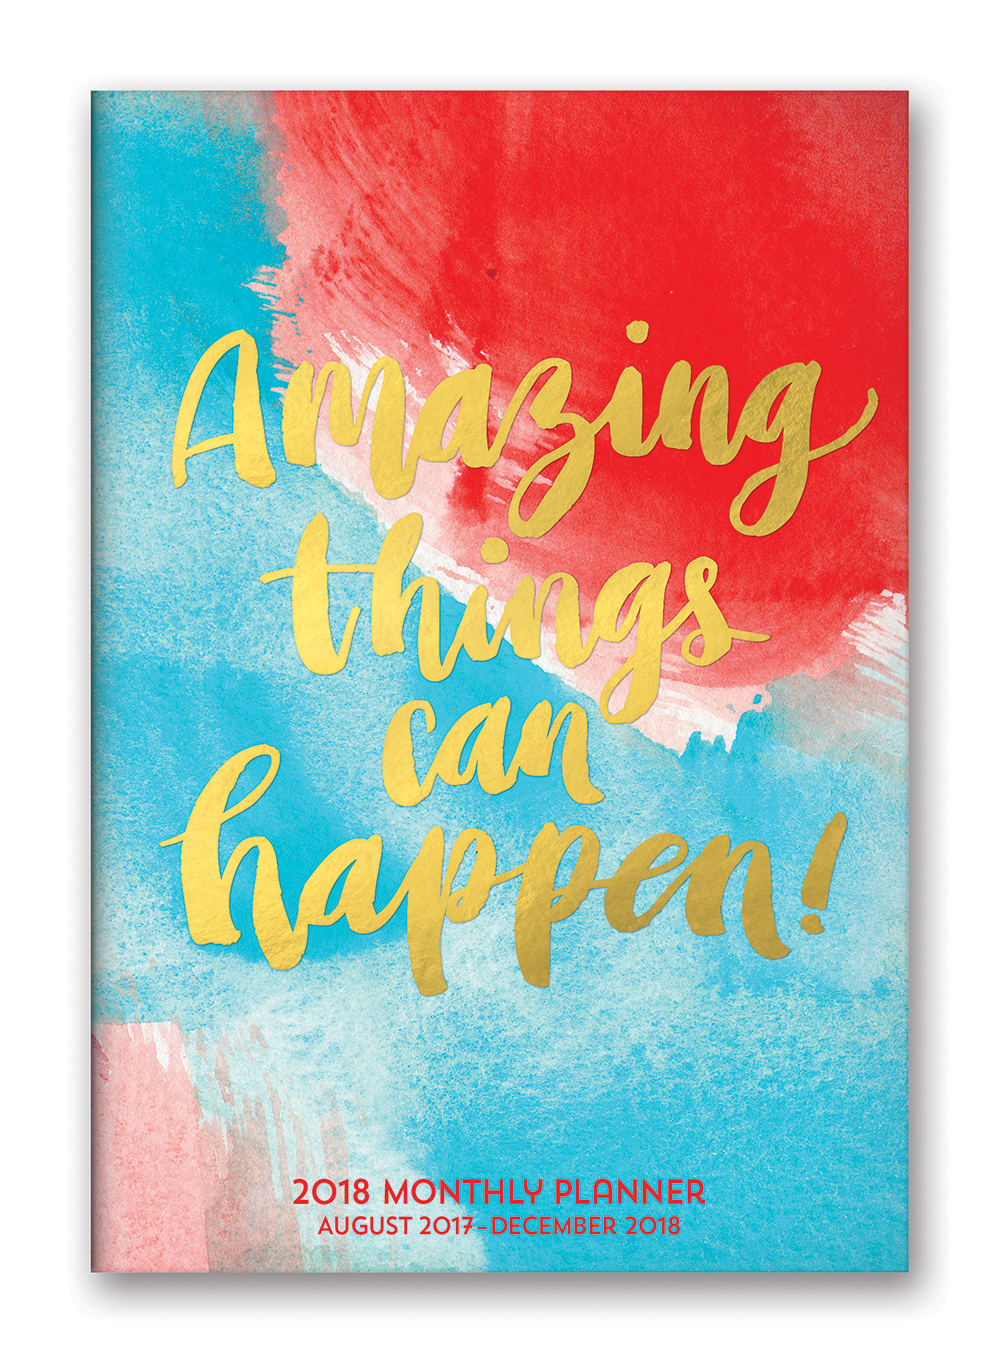 Amazing Things Can Happen! Monthly Pocket Planner 2018 by Orange Circle Studio 9781682581988